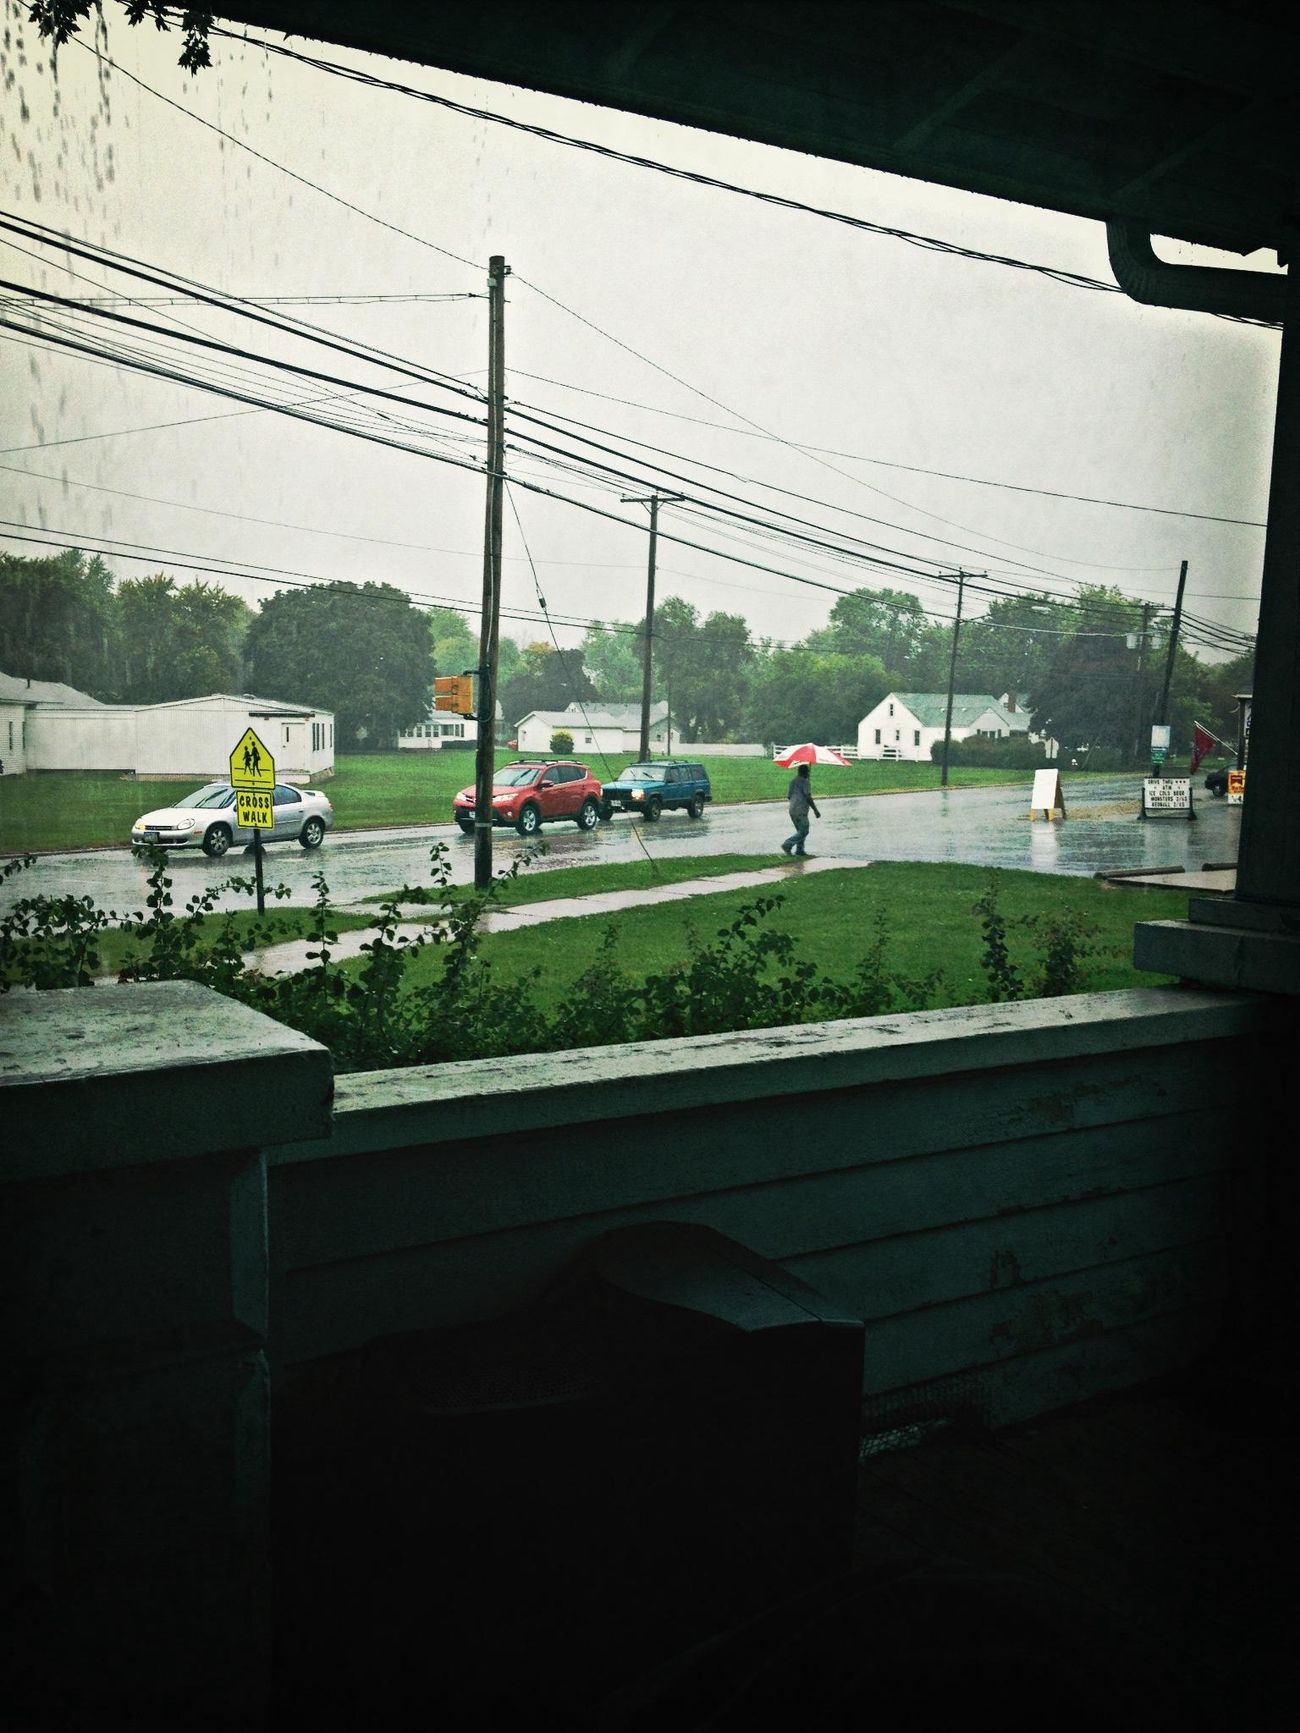 beautiful rainy day.